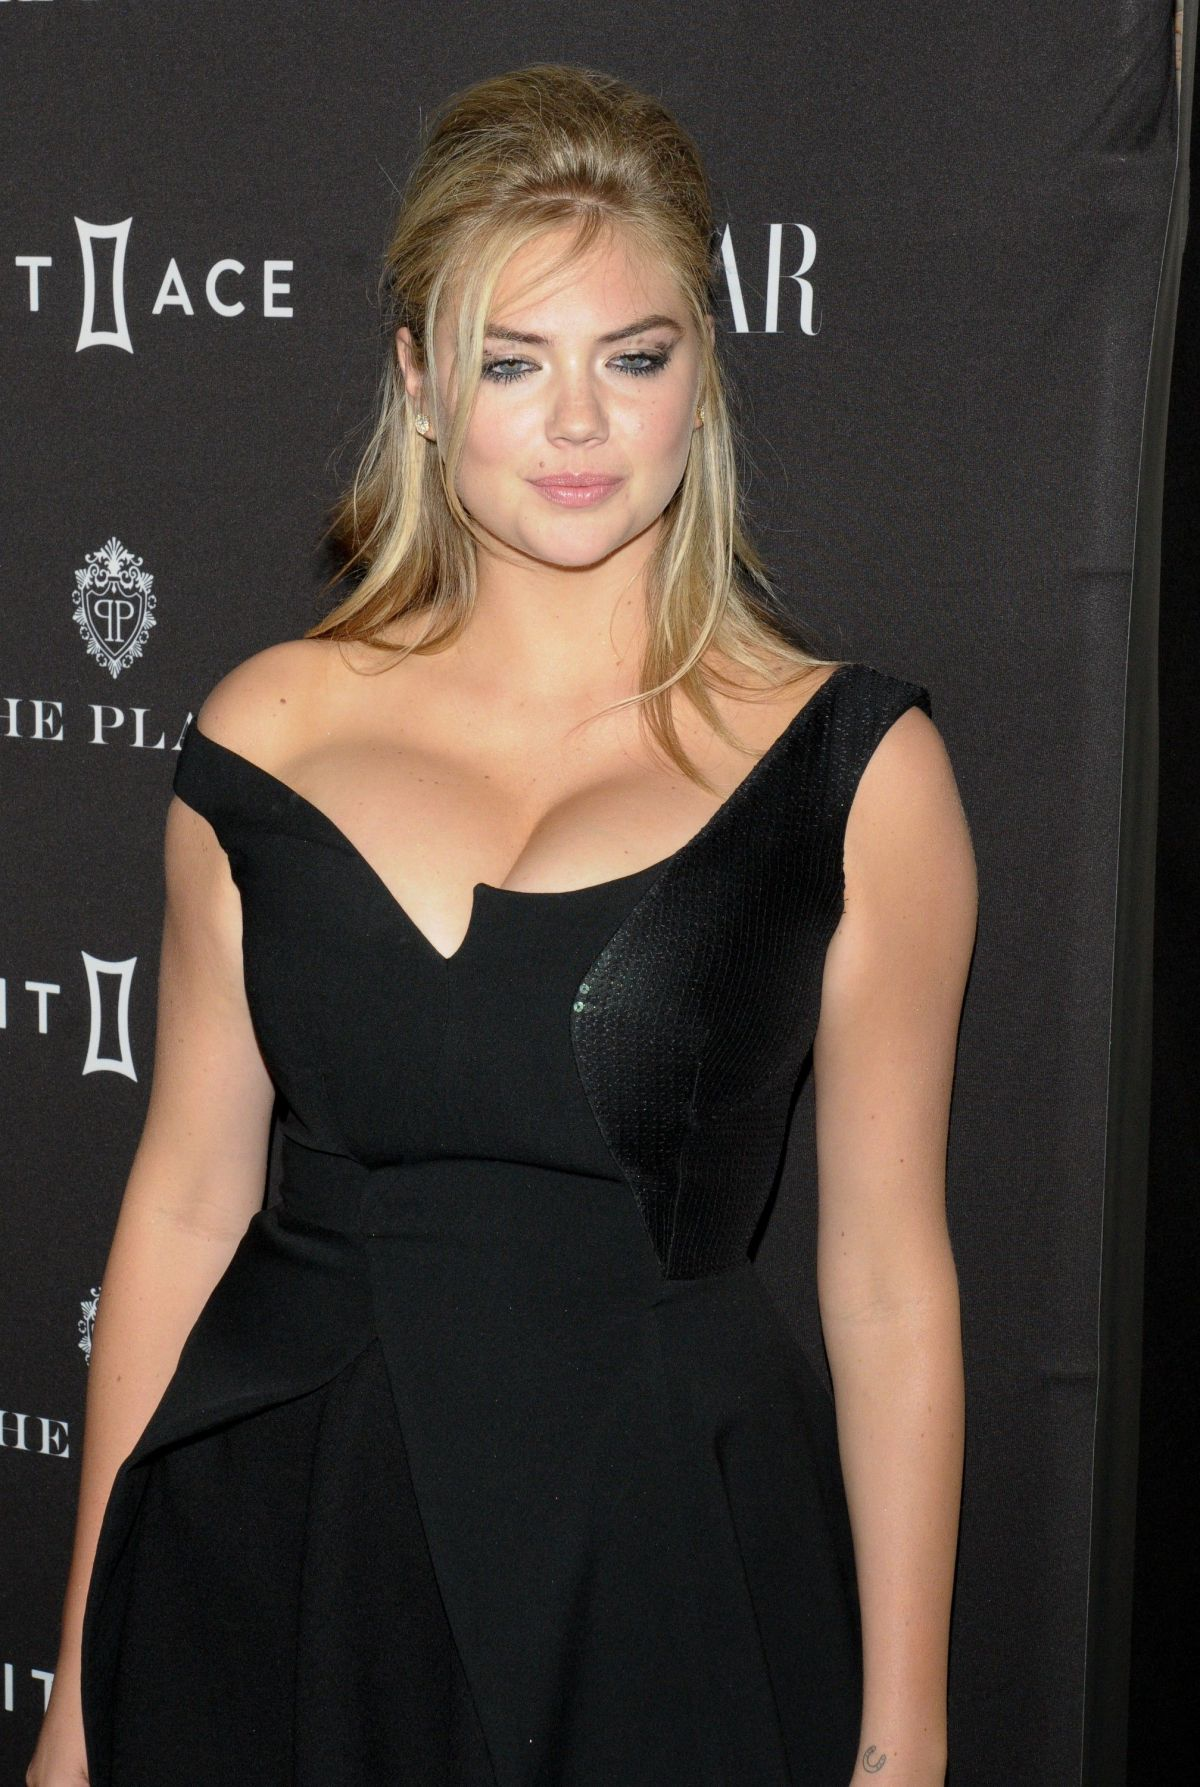 KATE UPTON at 2015 Harper's Bazaar Icons Event in New York 09/16/2015 ...